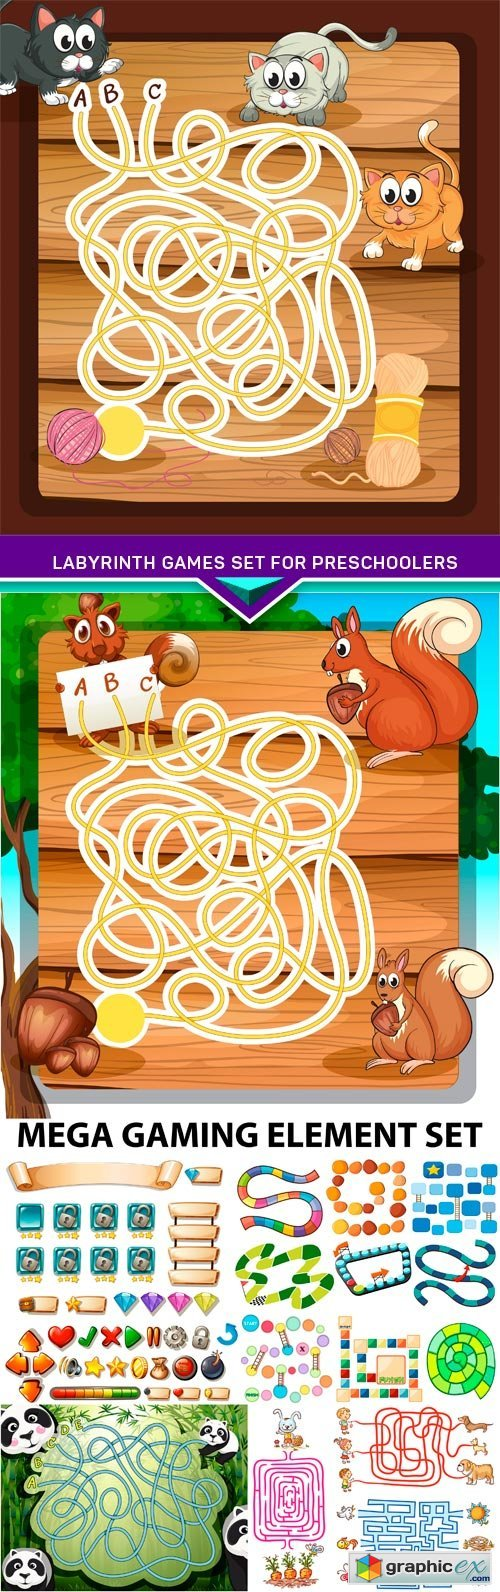 Labyrinth games set for preschoolers 5X EPS